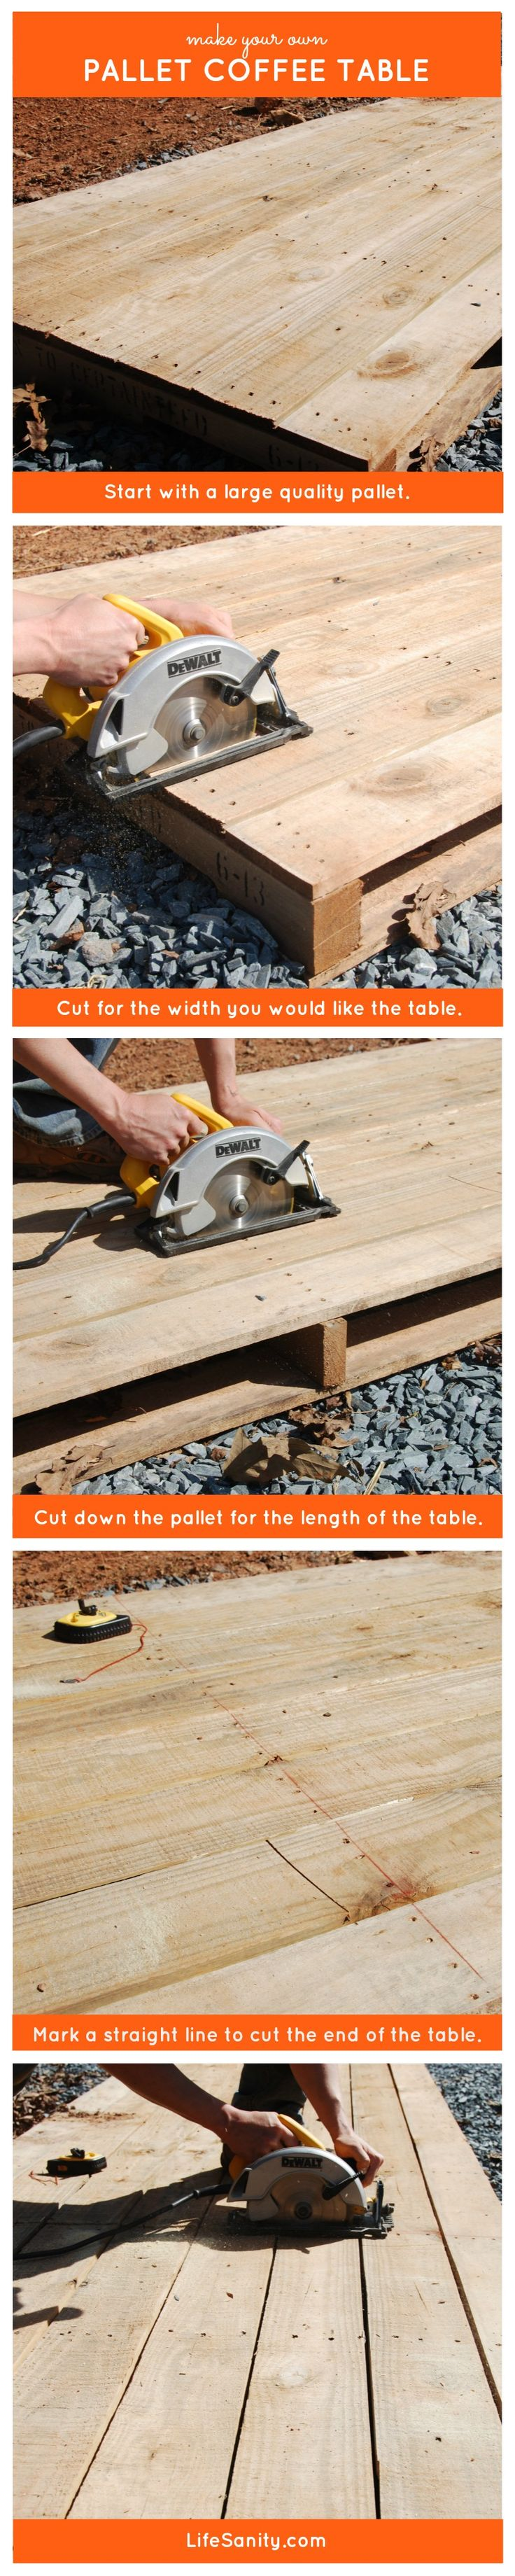 Make Your Own Pallet Coffee Table   Life Sanity